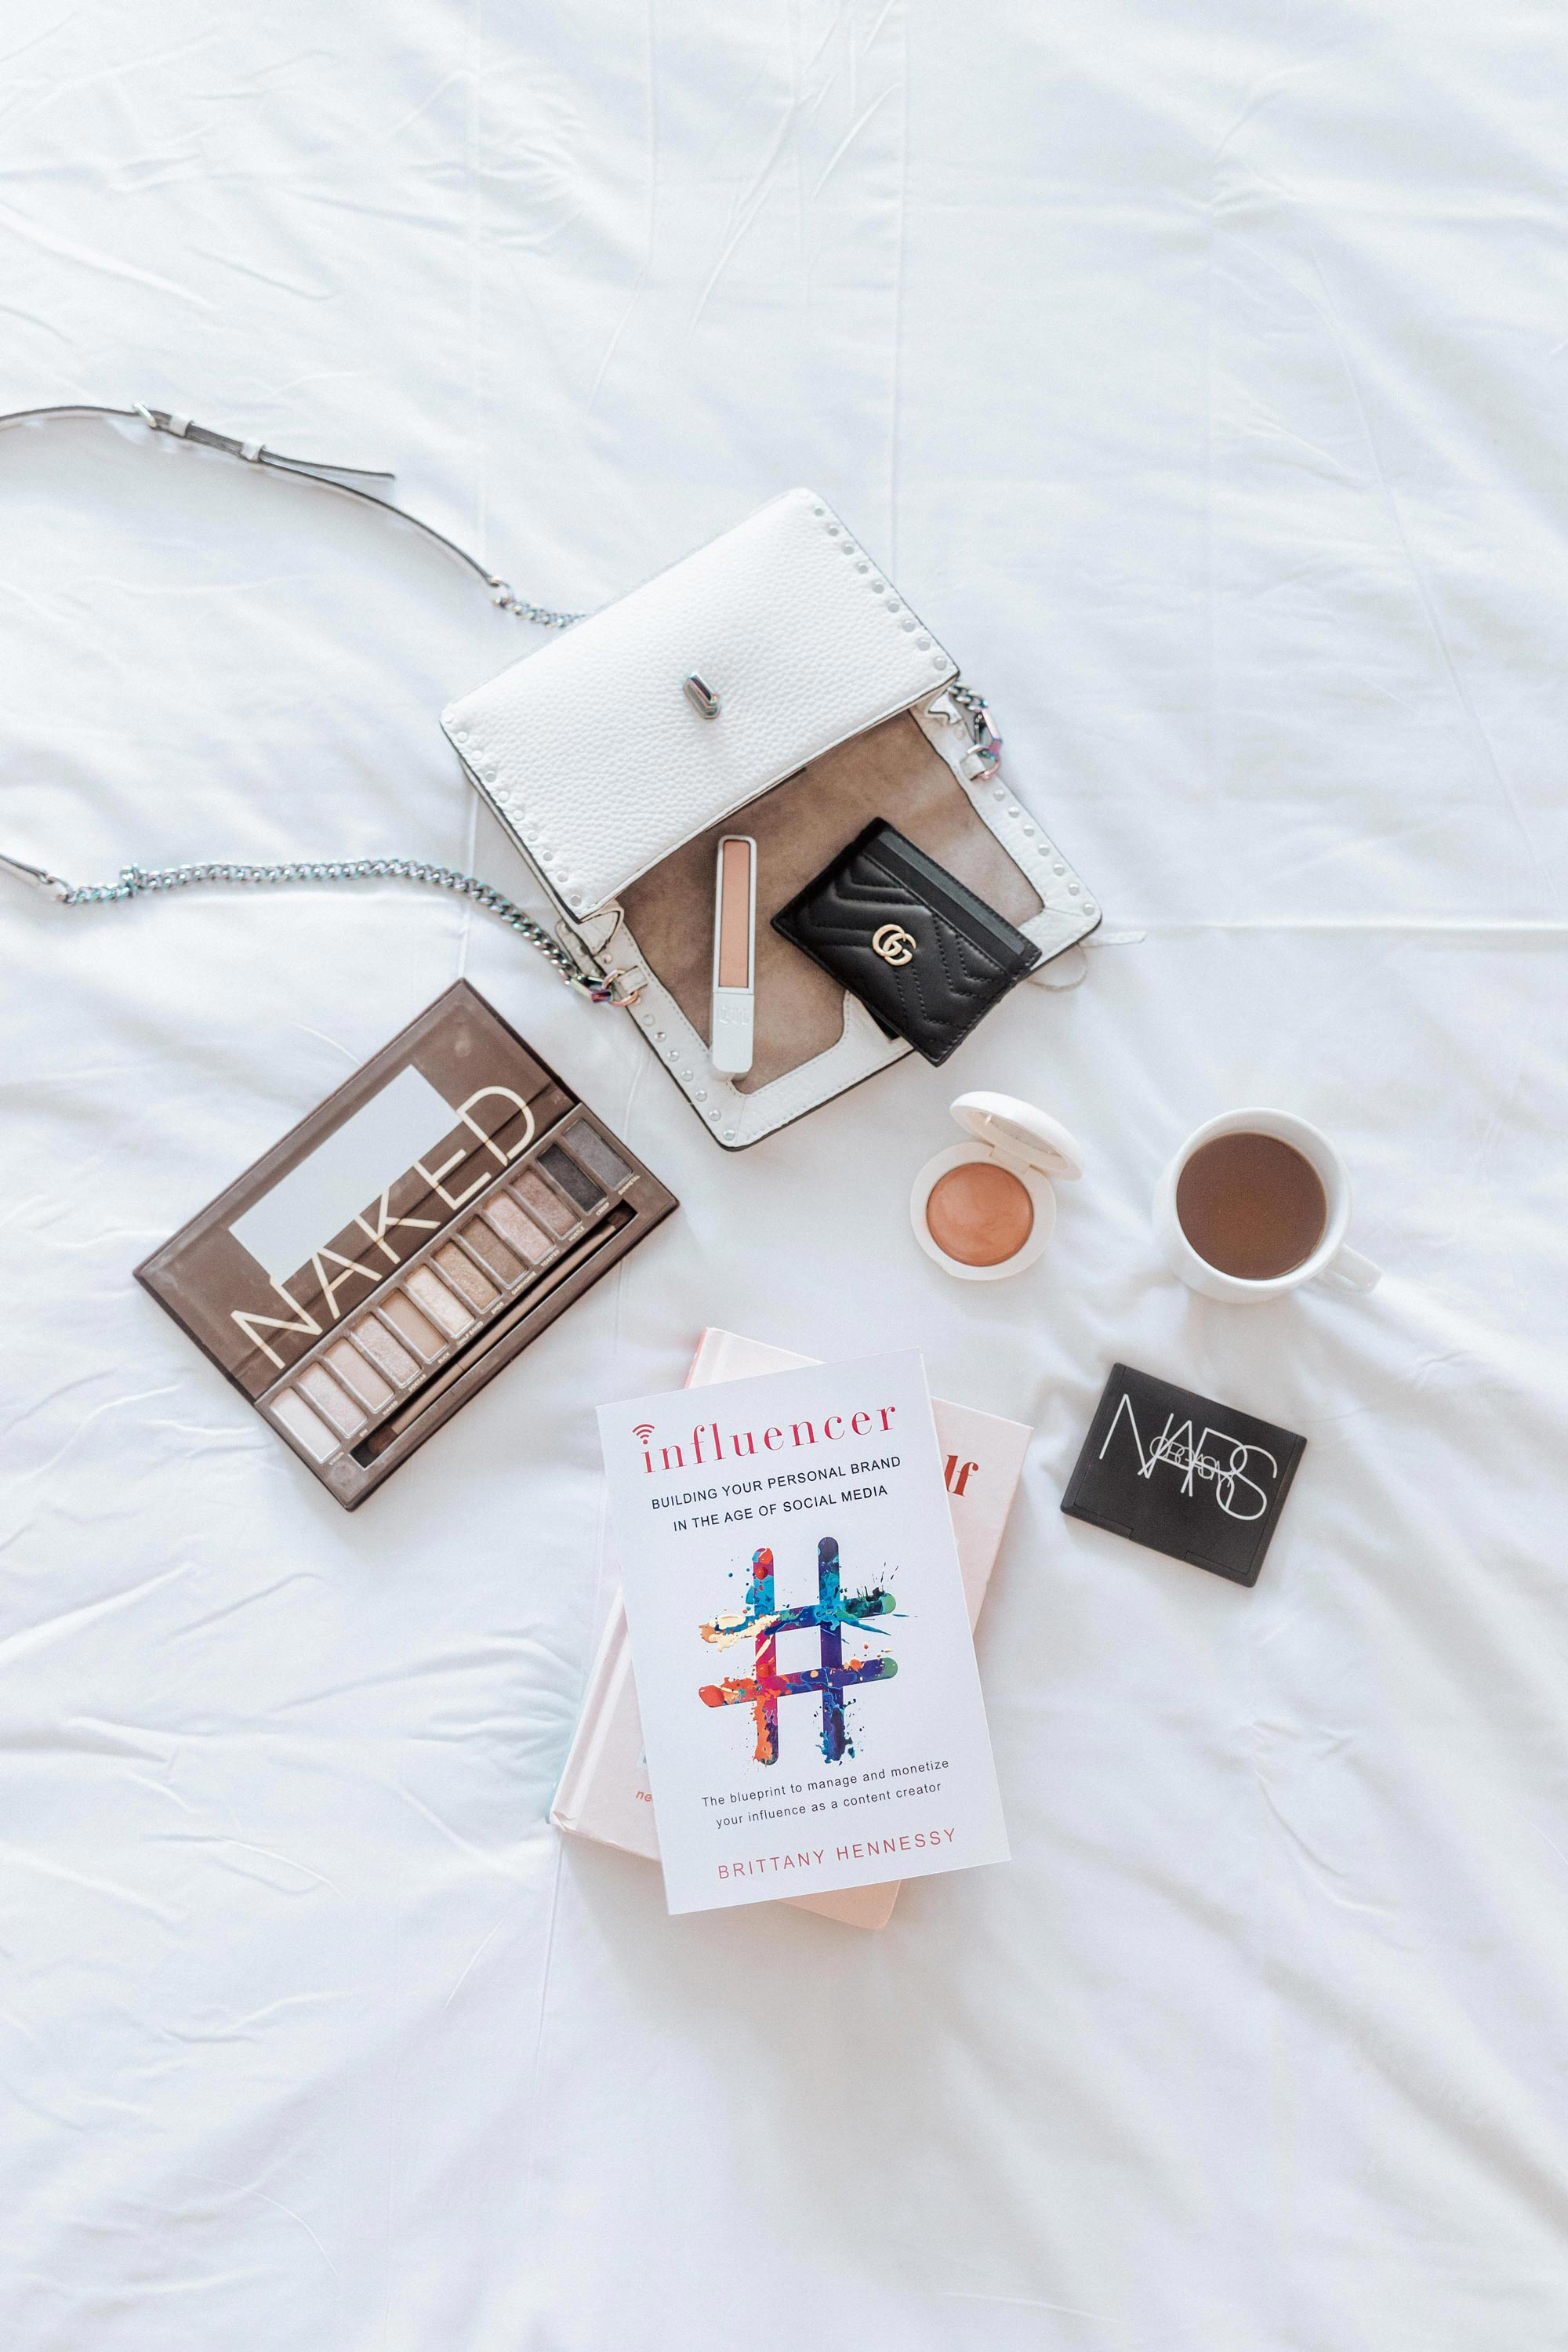 A-must-read-book-to-up-your-influencer-game_Molly-Larsen_Style-Blogger_Book-Flatlay_AllAboutGoodVibes.com_IG_@TheVibesCloset_Influencer-Building-Your-Personal-Brand-in-the-Age-of-Social-Media-by-Brittany-Hennessy